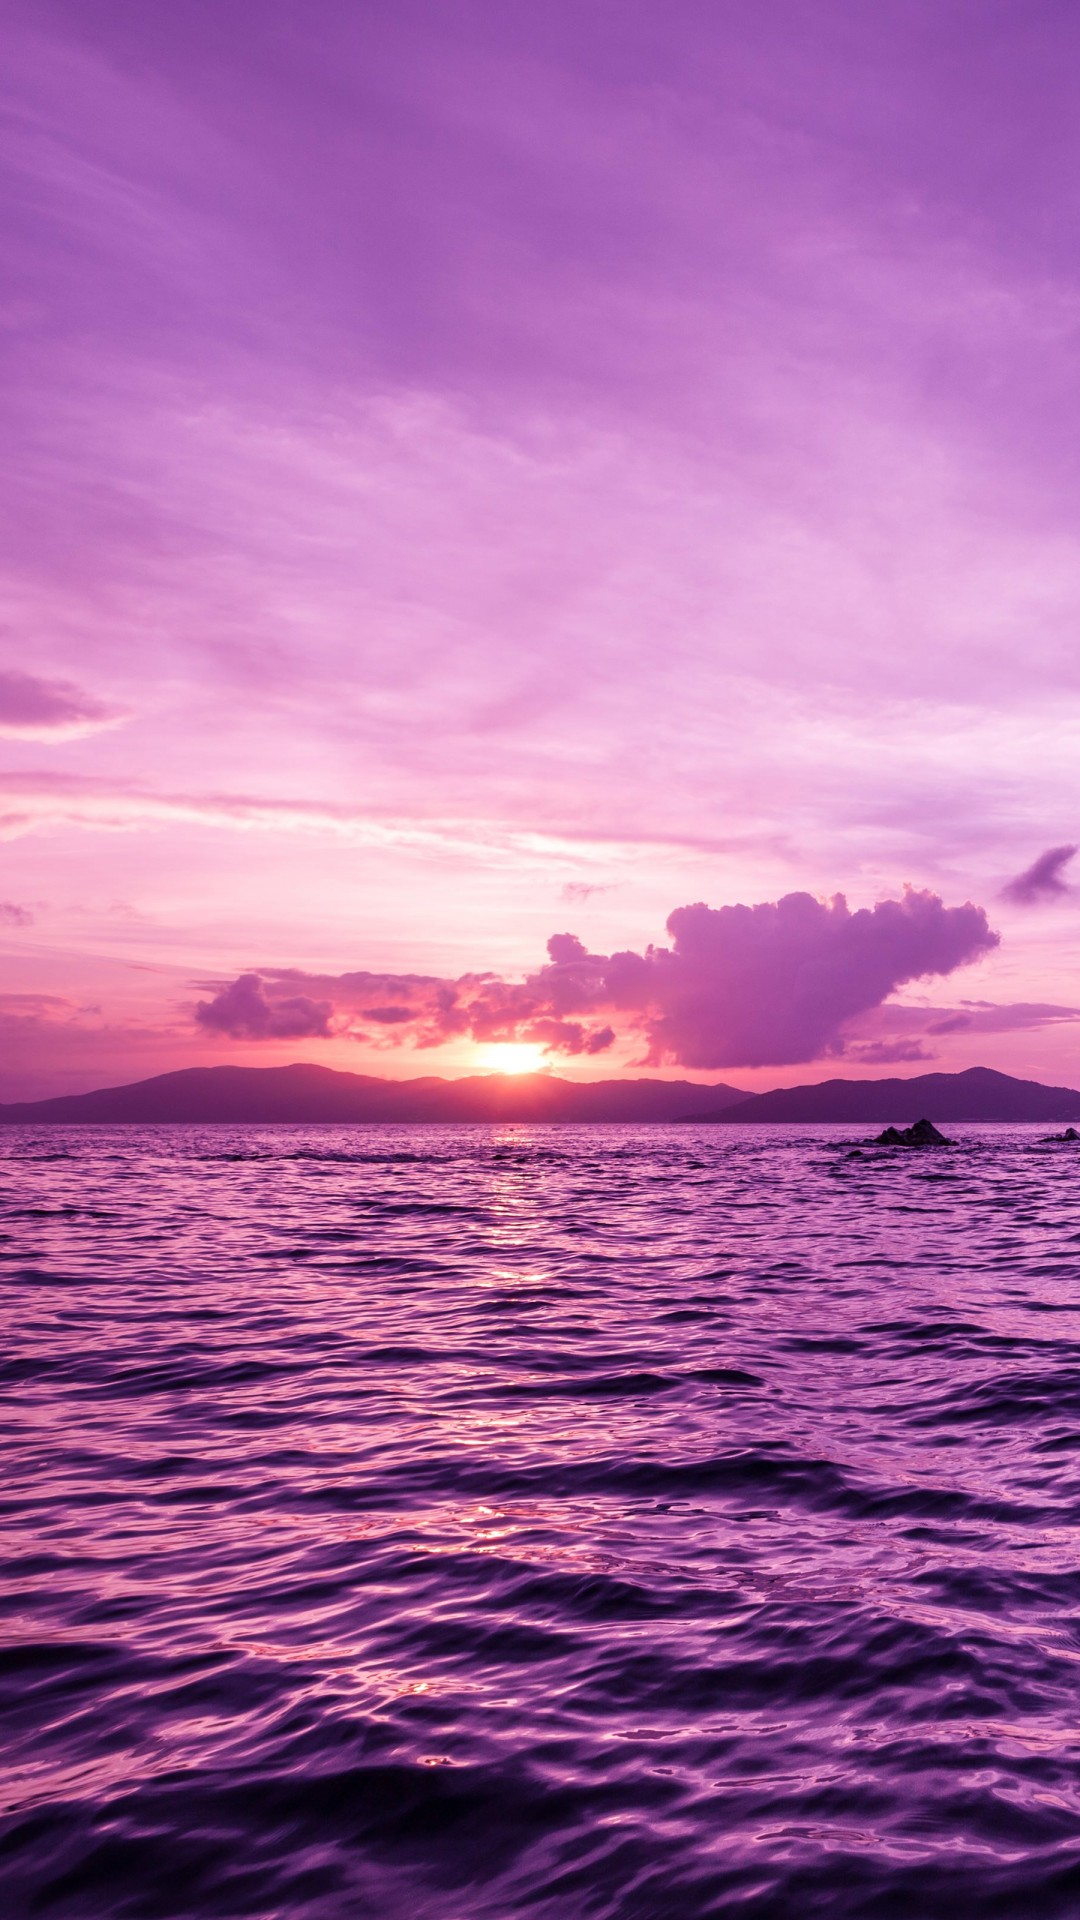 Pelican Island Sunset, British Virgin Islands Wallpaper for SONY Xperia Z1